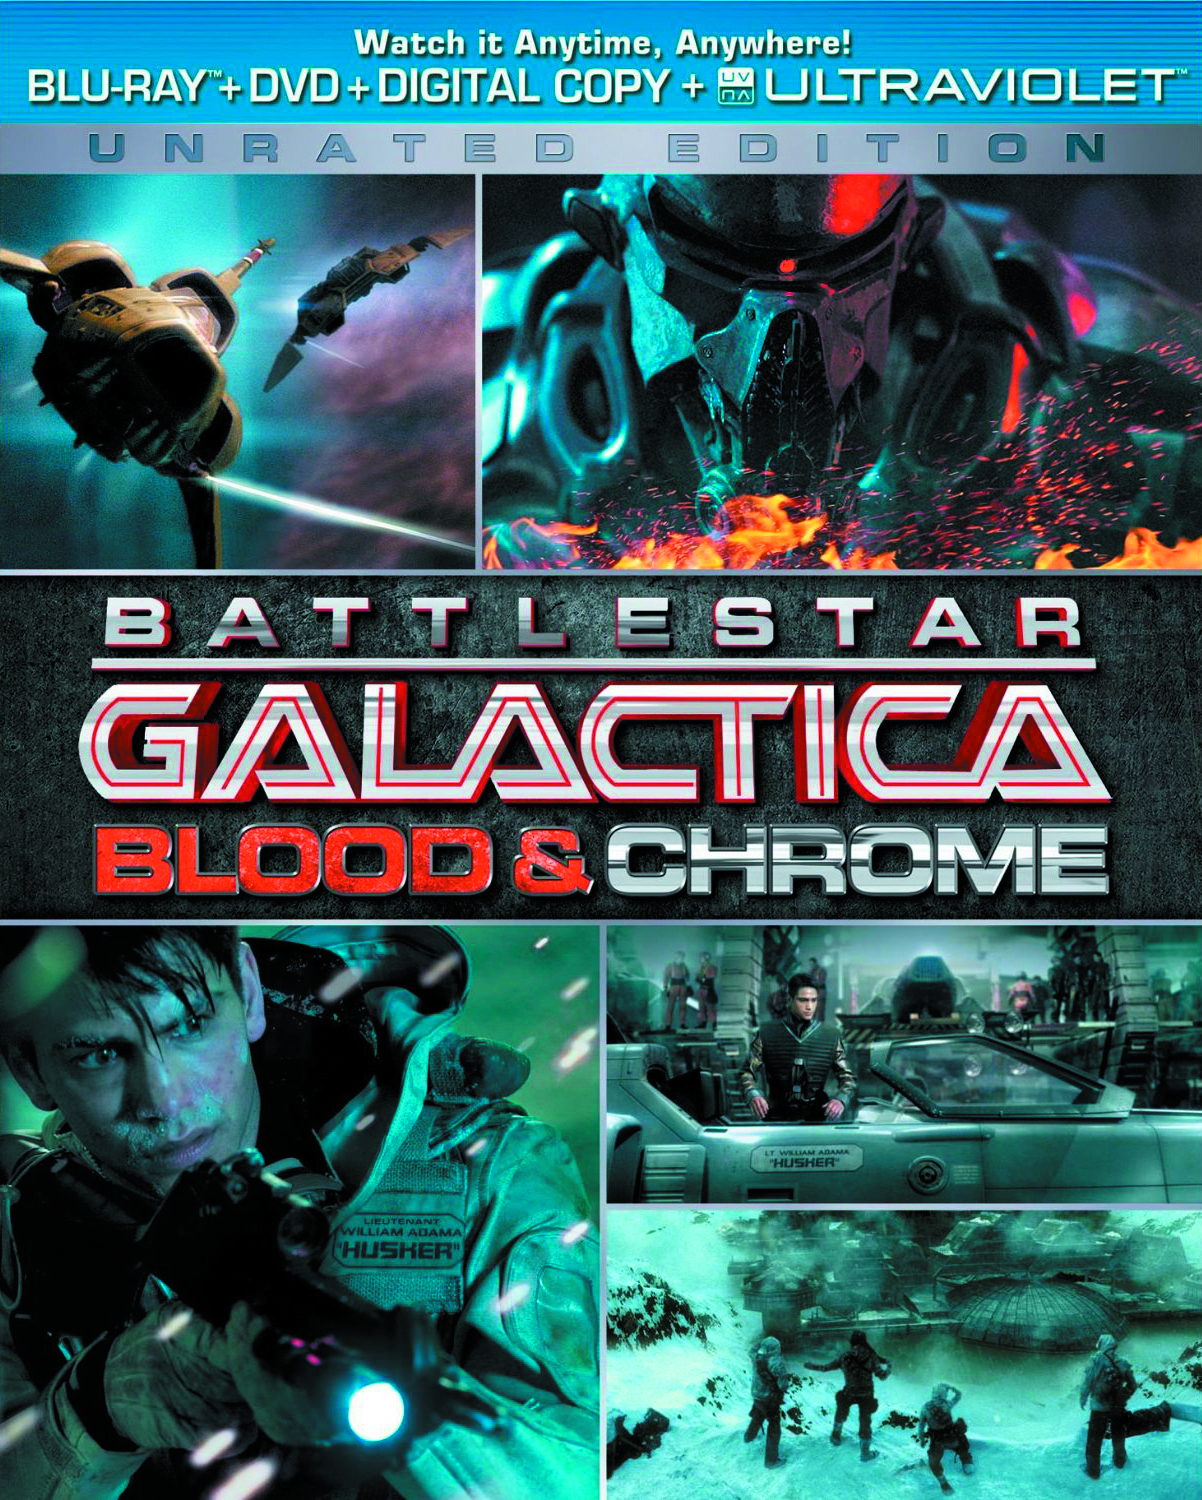 BATTLESTAR GALACTICA BLOOD & CHROME DVD